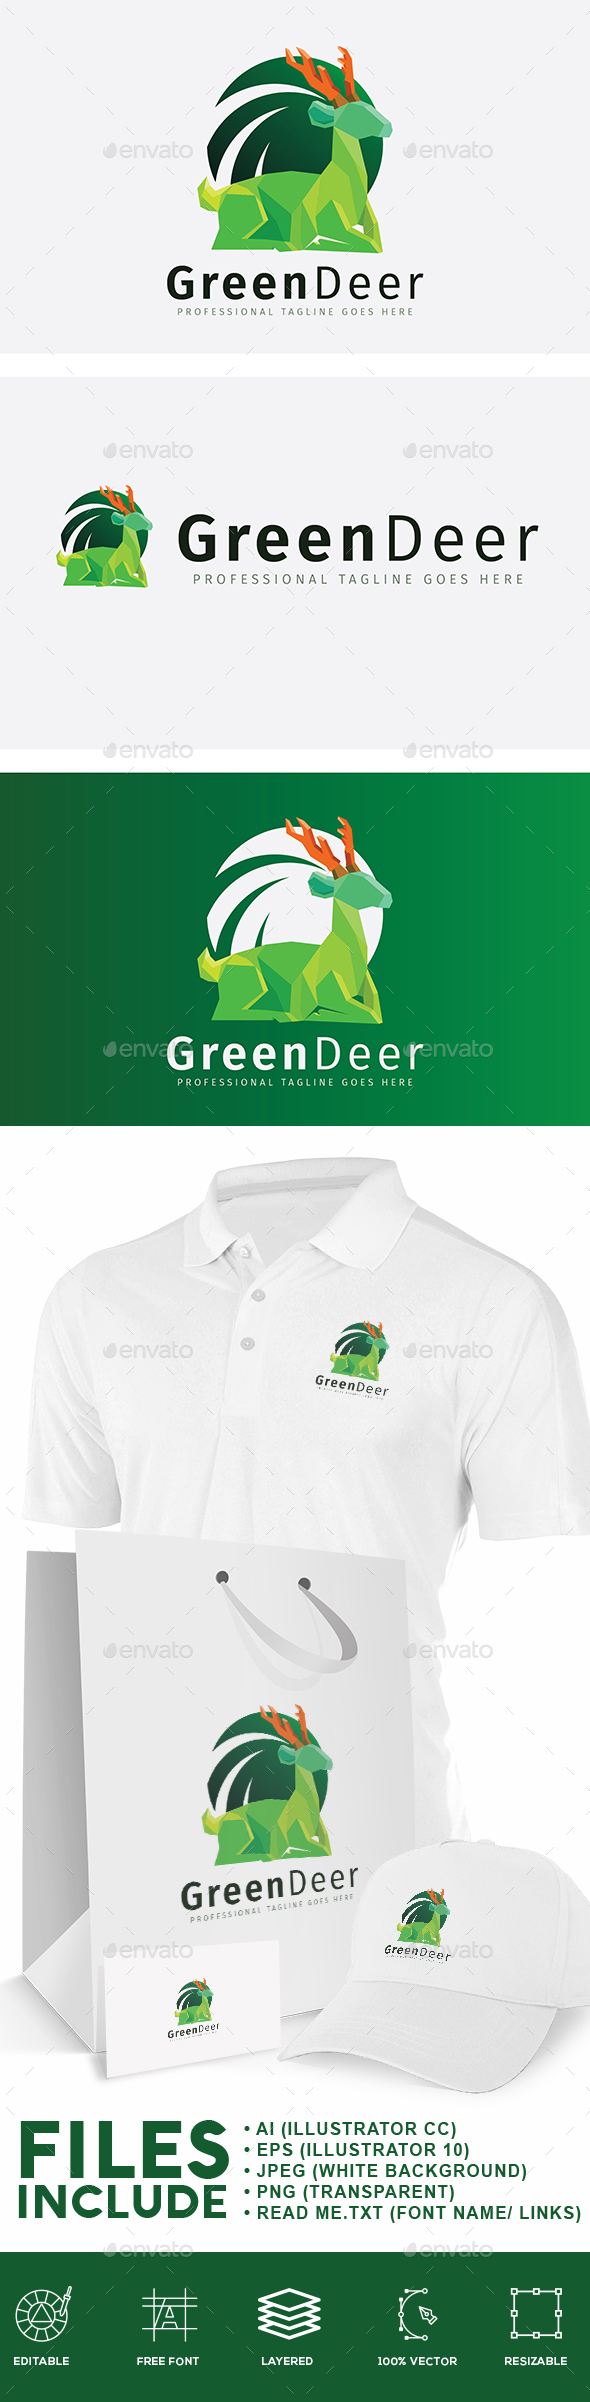 Green Deer Logo - Animals Logo Templates